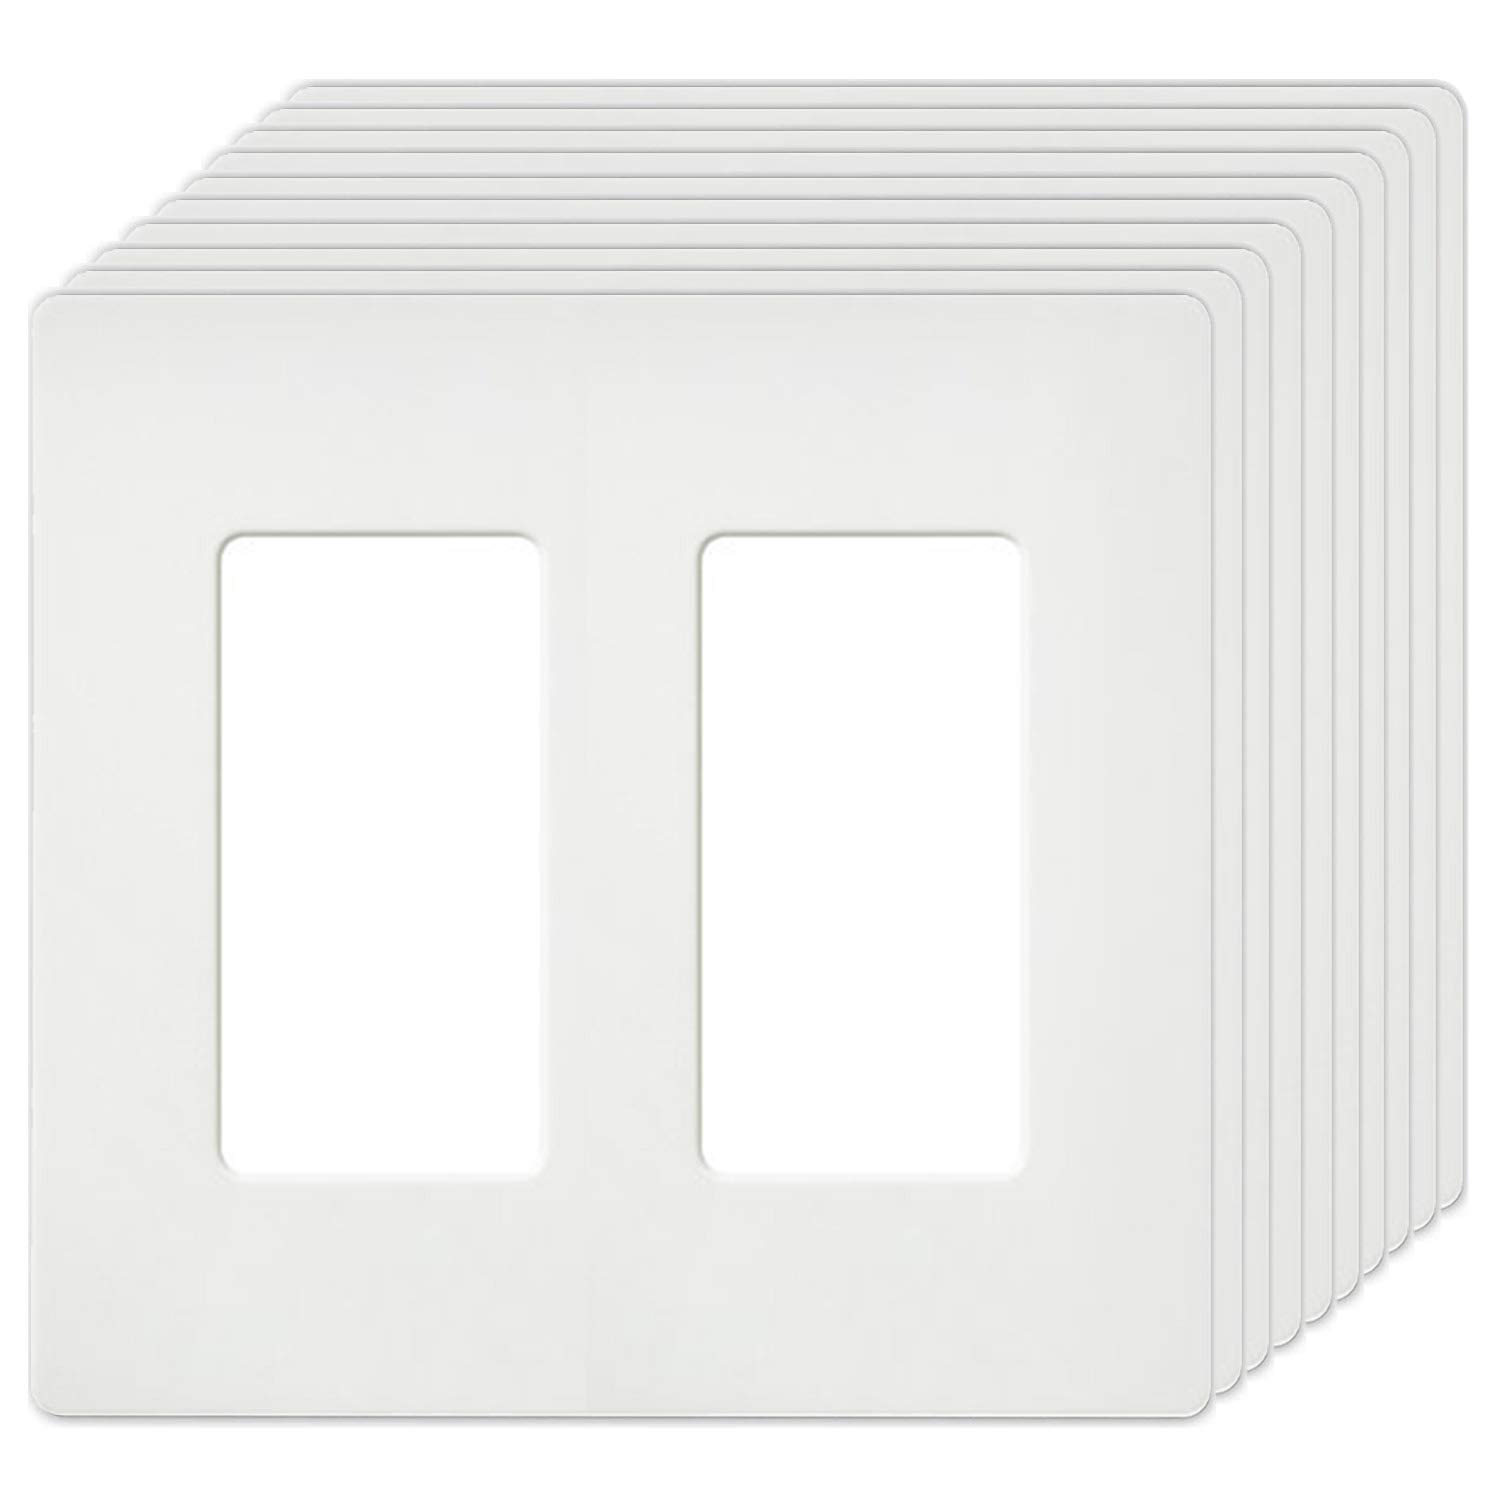 [10 Pack] Screwless Wall Plates by BESTTEN, USWP4 Series, 2-Gang Outlet Covers for GFCI, Decor Receptacles, Dimmers and Light Switches, Unbreakable PC, Residential Grade, UL Listed, White